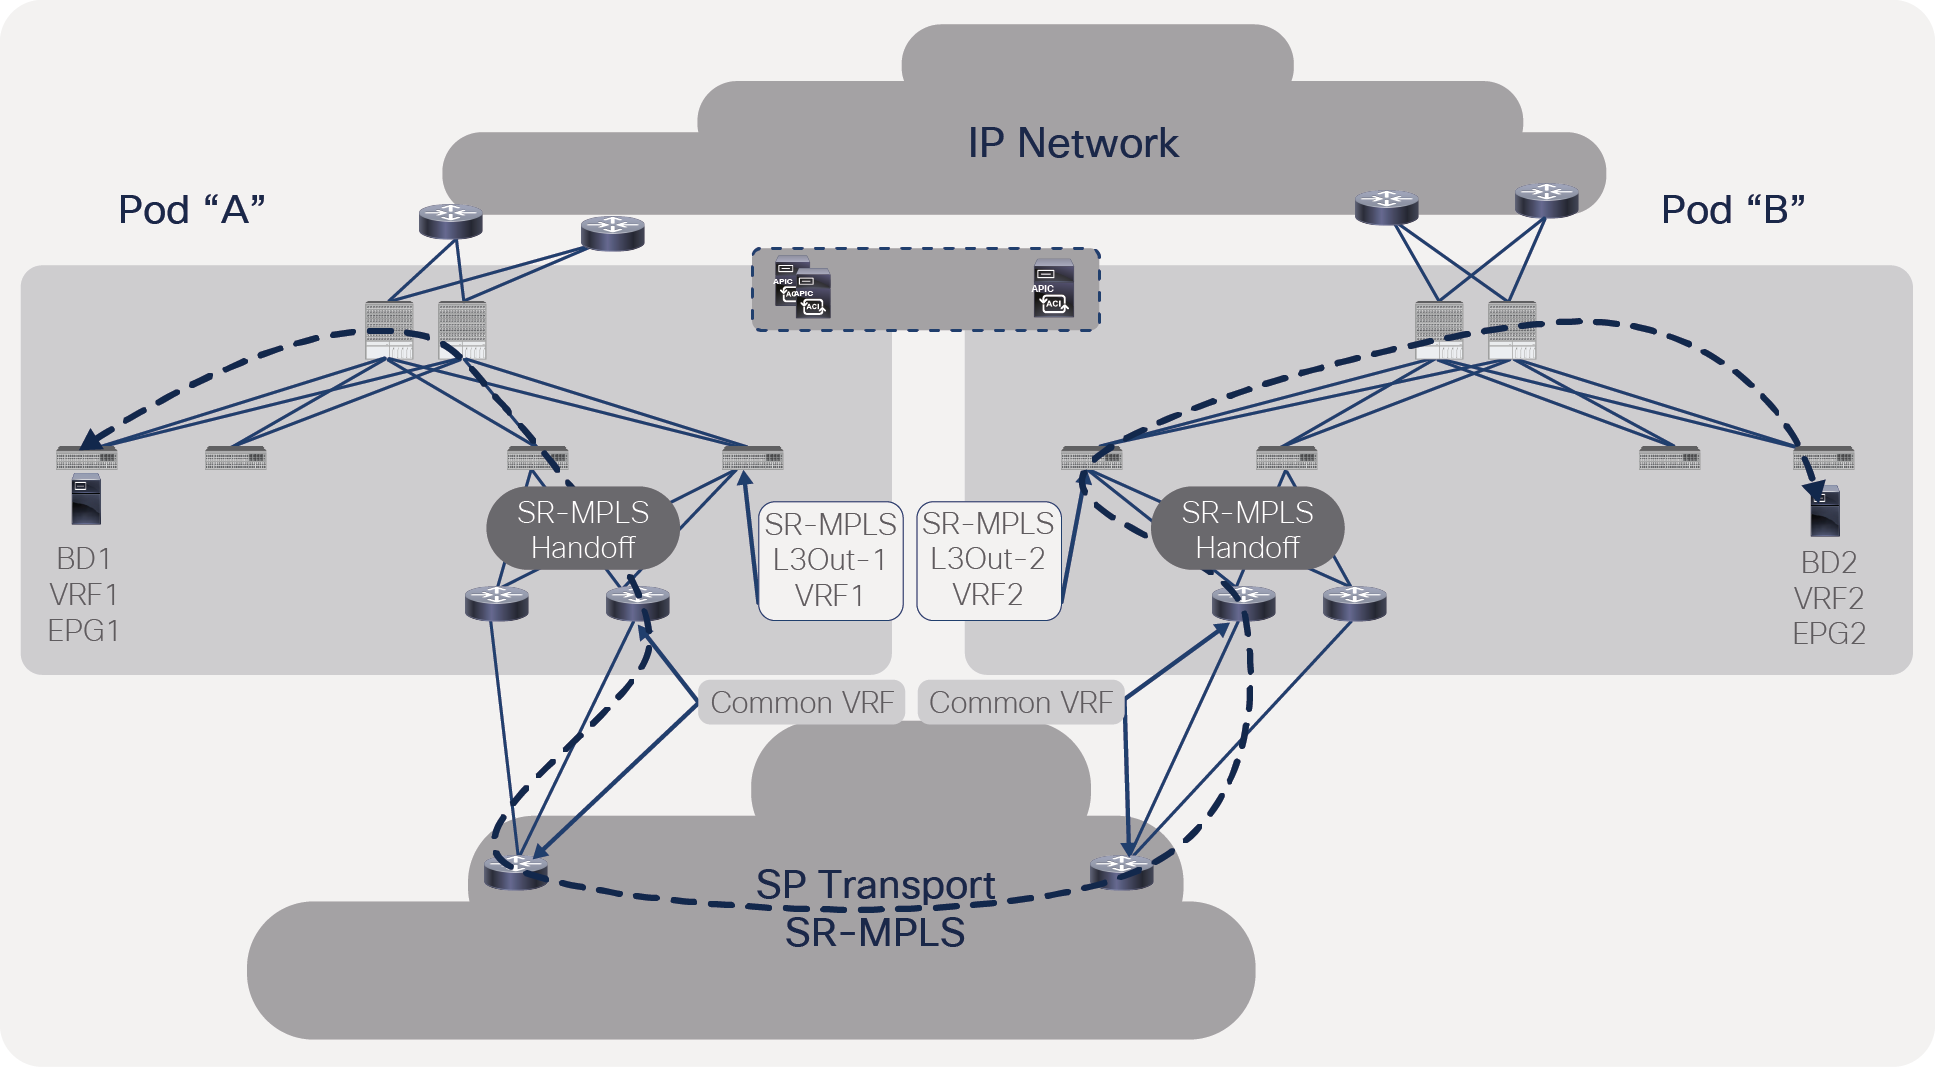 Traffic forwarding between ACI pods with a separate VRF in each pod